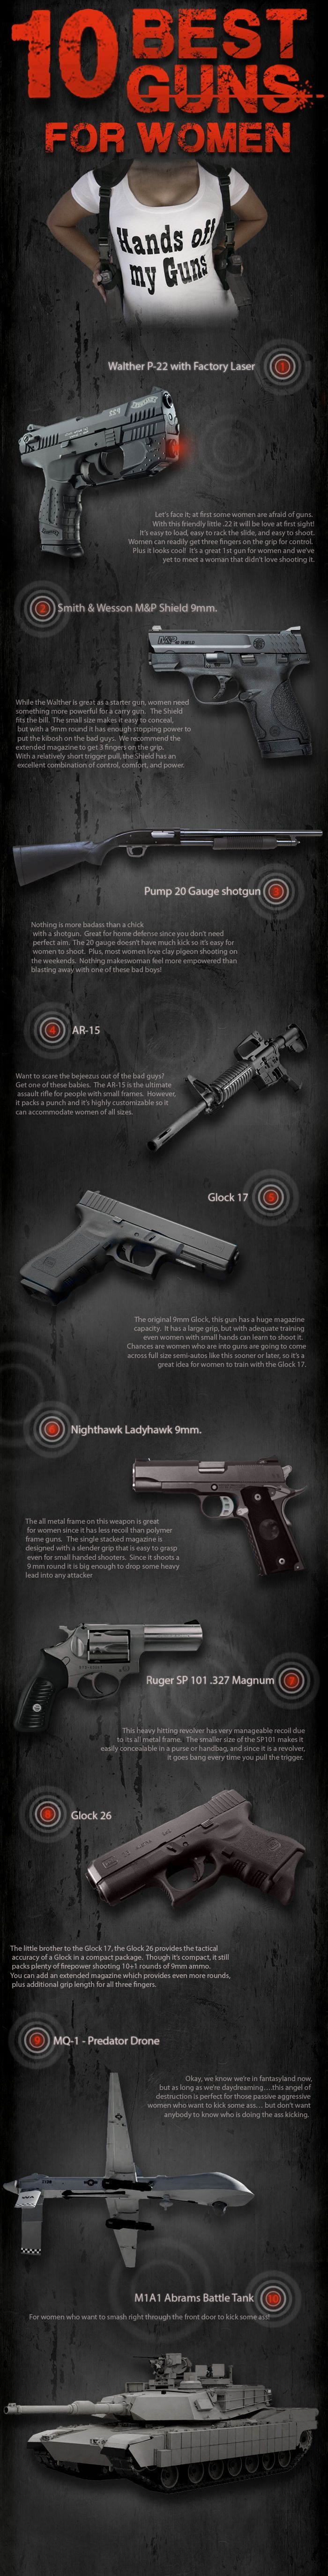 The 10 Best Guns for Women. Love it.. mine is numero uno.. sweet